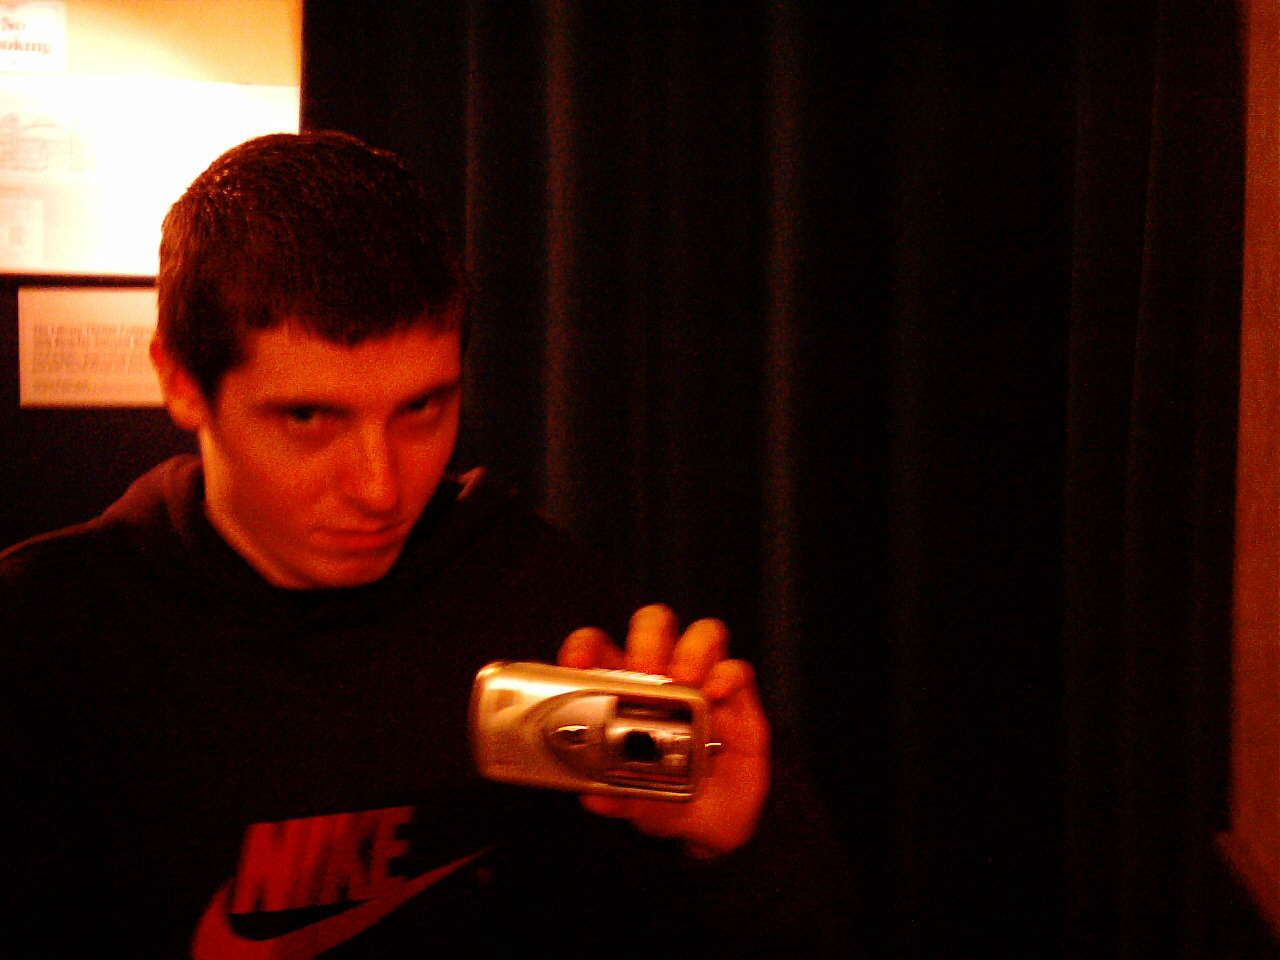 Me with my Nikon Coolpix camera